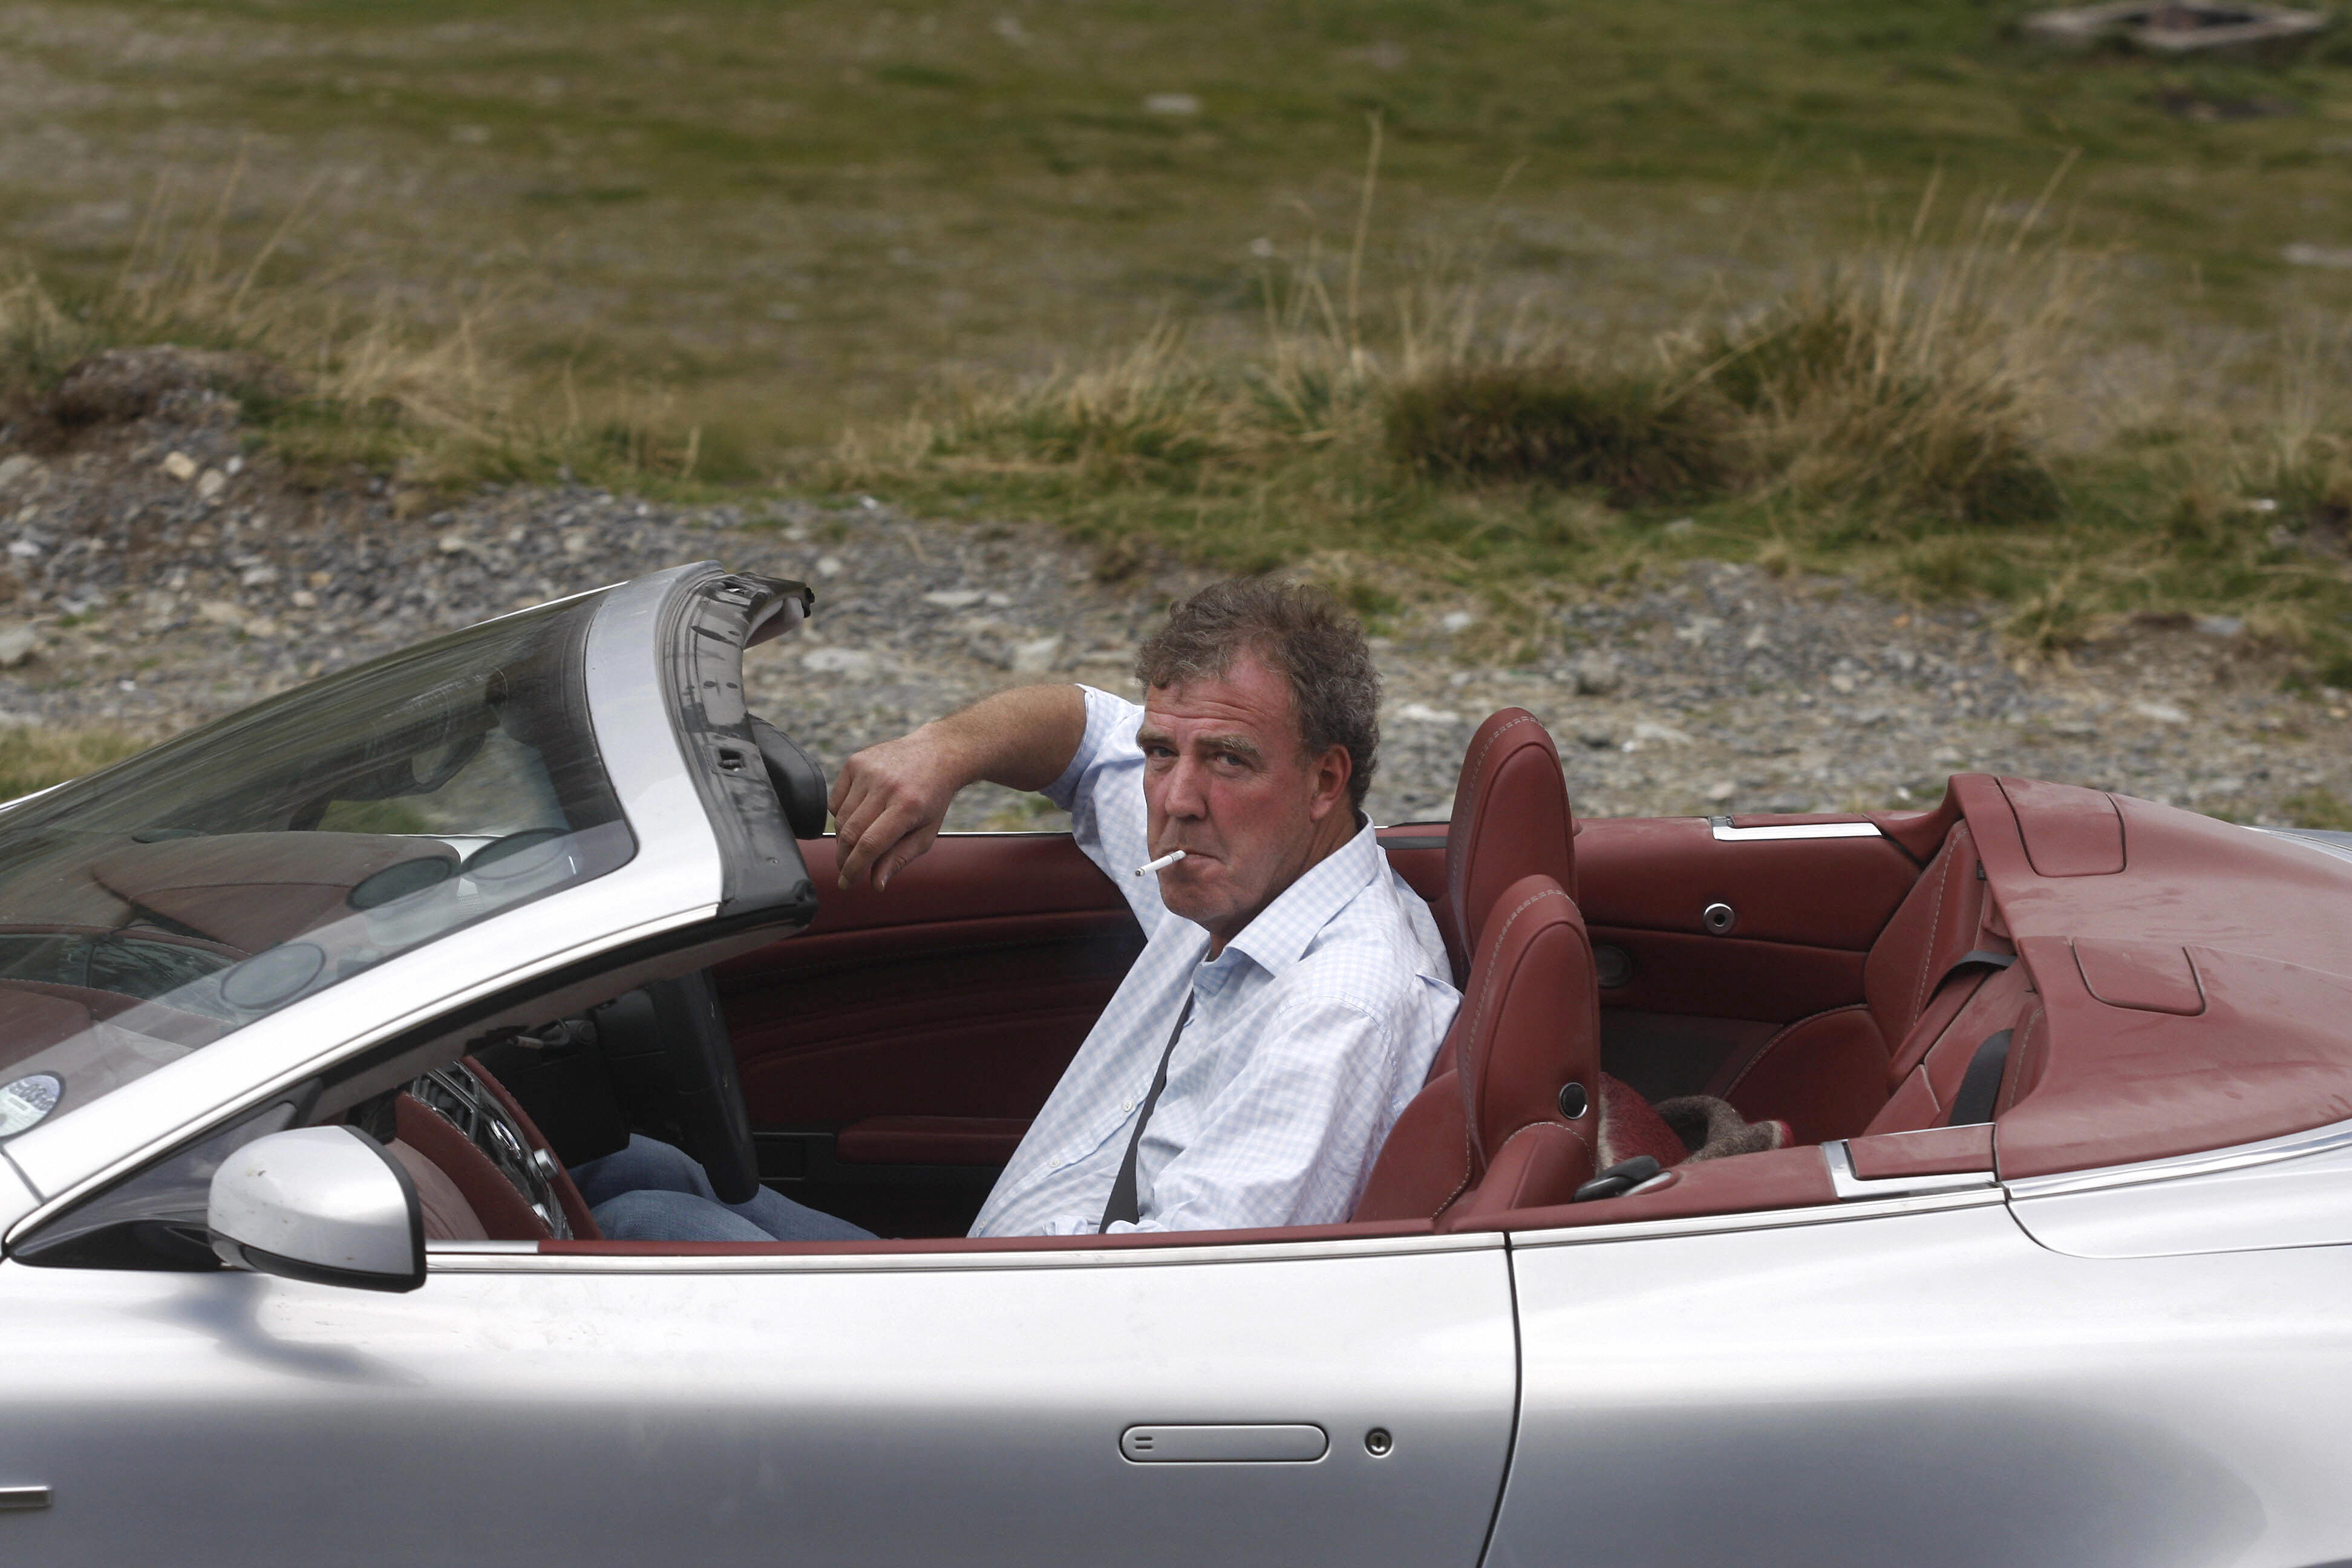 British television BBC presenter of motor show 'Top Gear' Jeremy Clarkson is pictured while he drives an Aston Martin car on Transfagarasan road close to Sibiu city, 300 km northwest from Bucharest, on September 24, 2009.